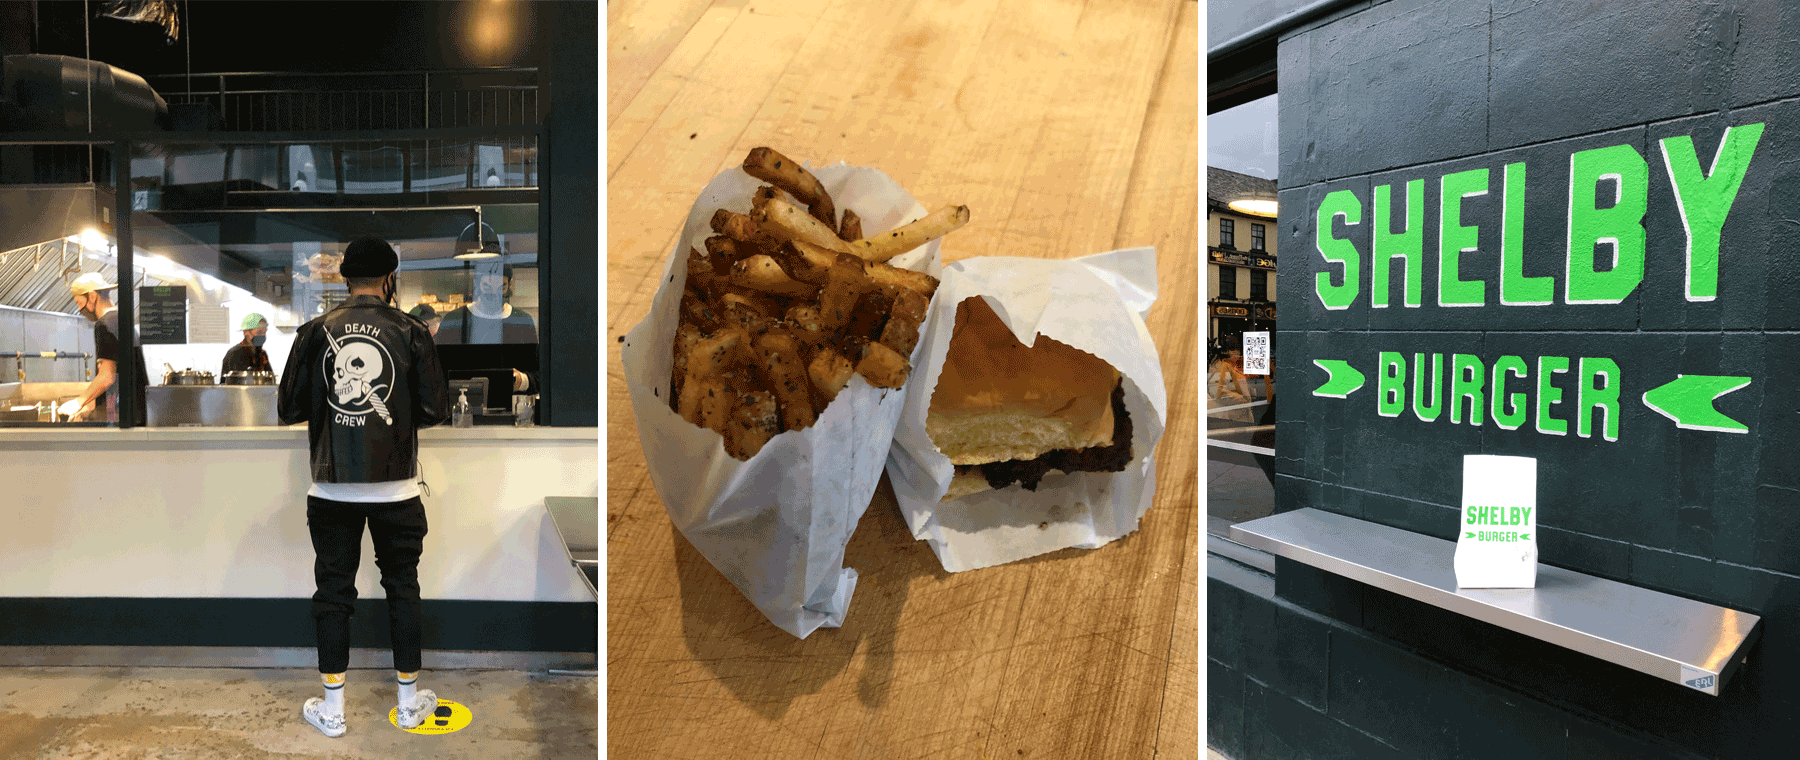 Shelby Burger brings old school appeal to ByWard Market